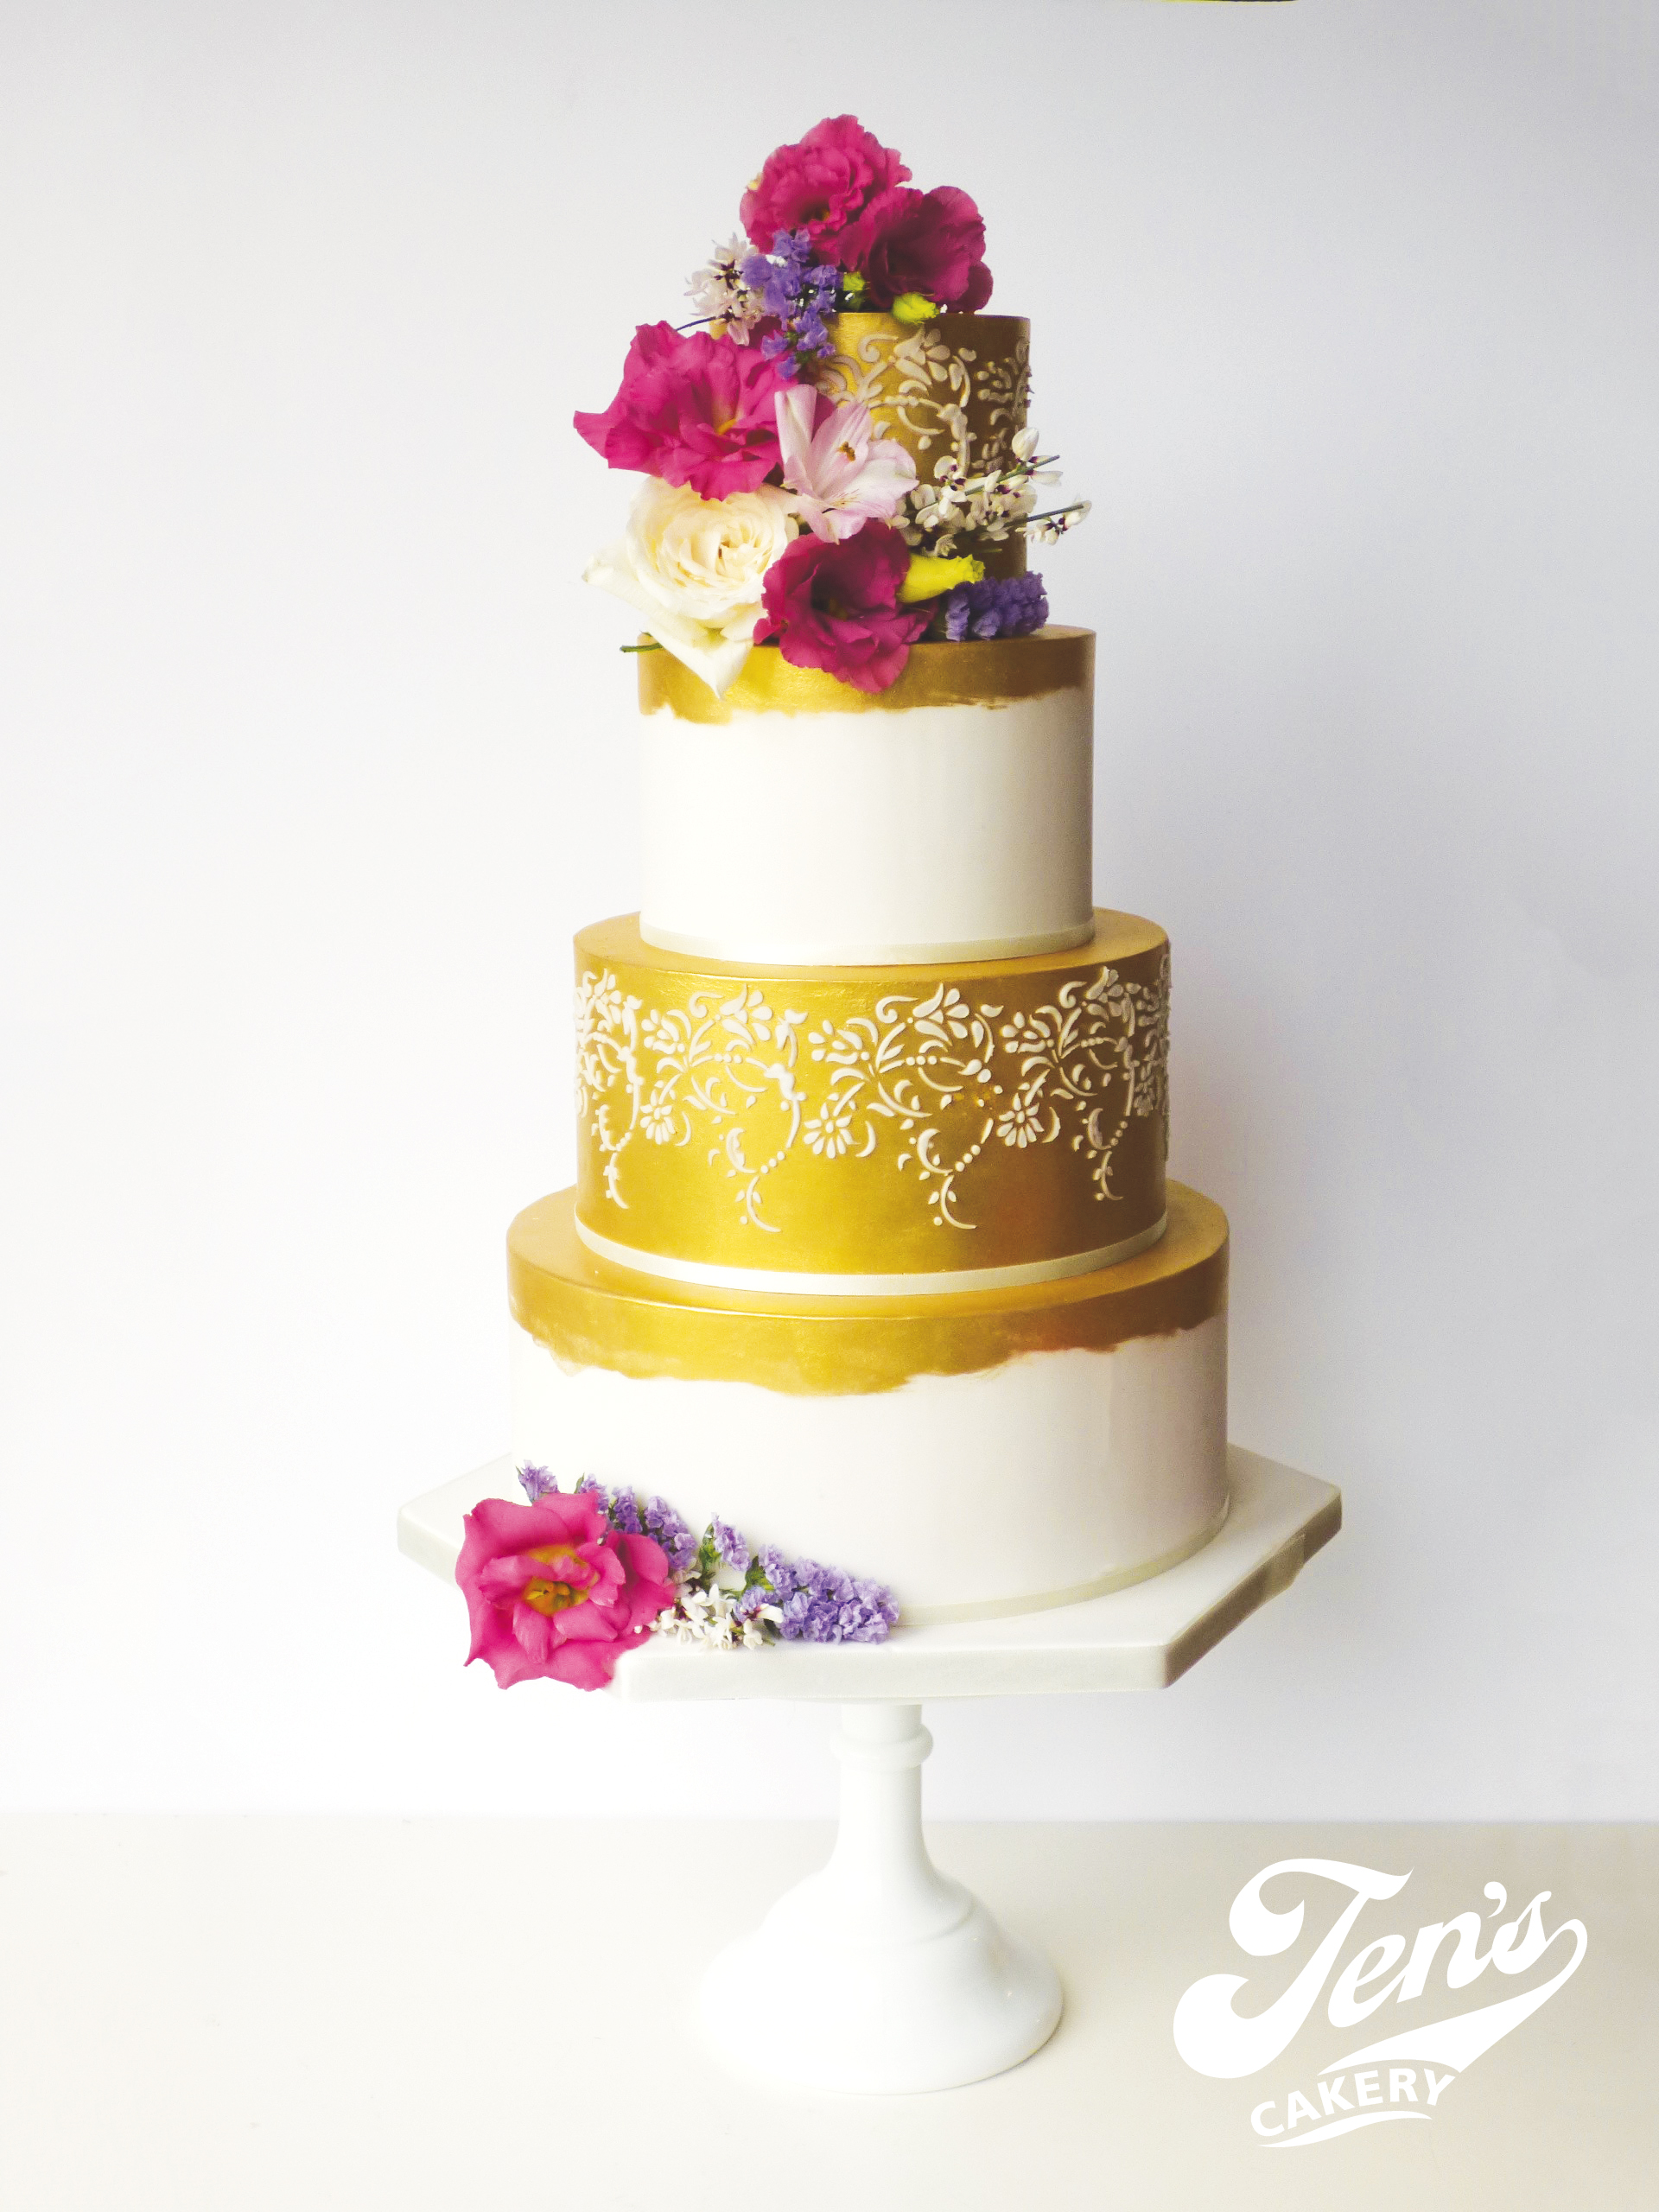 A wedding cake with metallic gold lustre and lace details - this is a great budget option with a luxury feel.